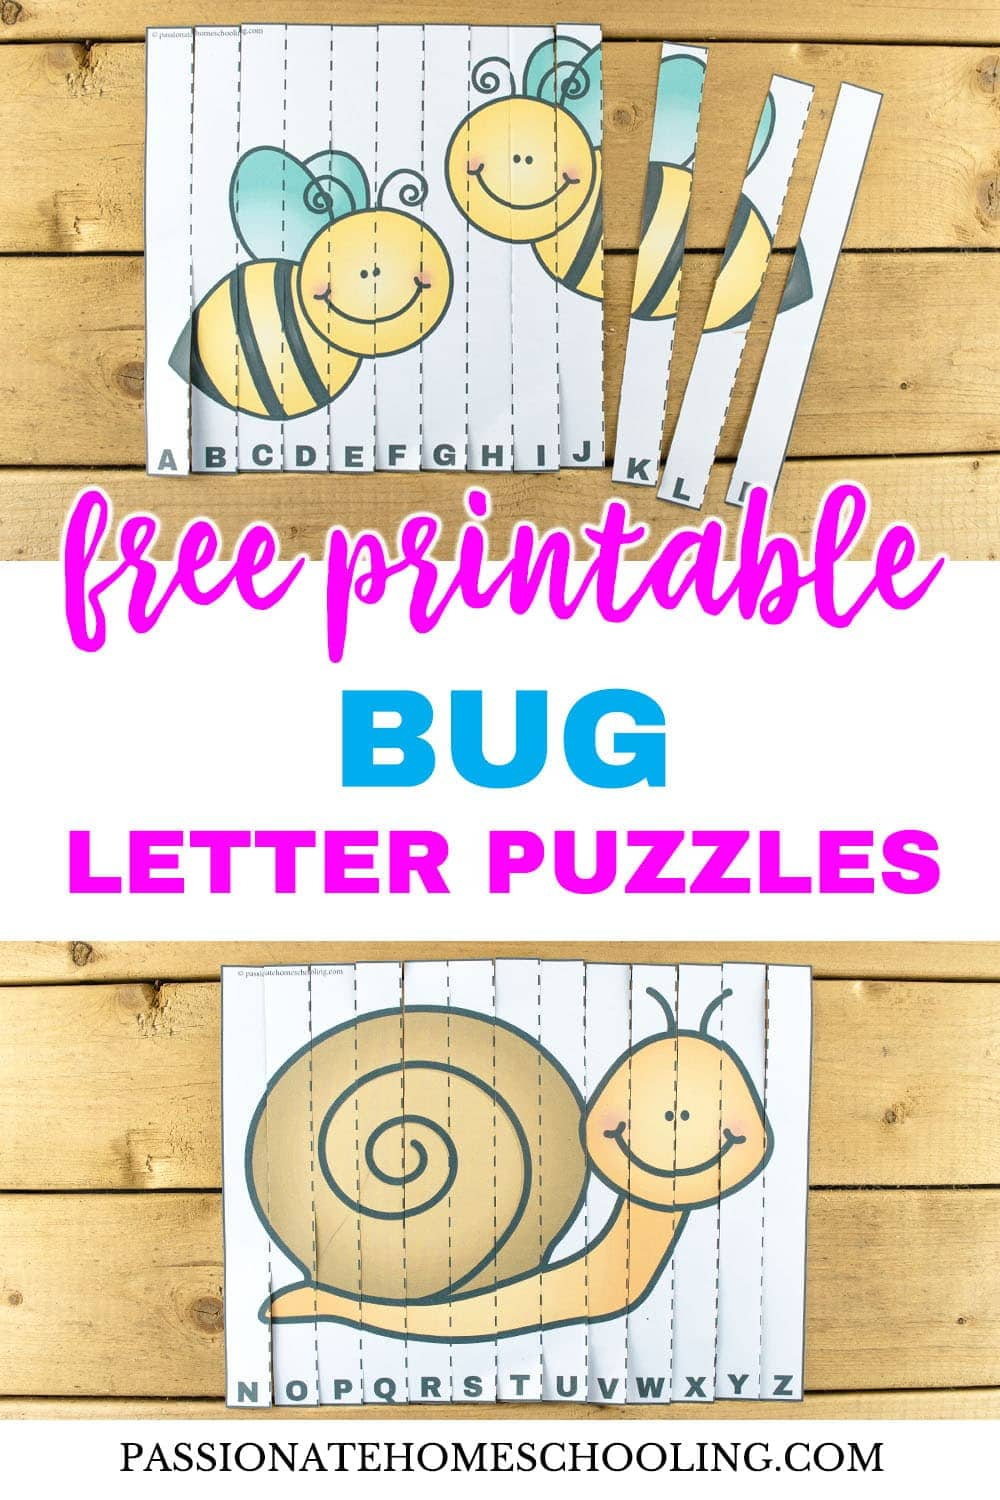 Free Printable Bug Letter Puzzles - Passionate Homeschooling - Printable Bug Puzzles